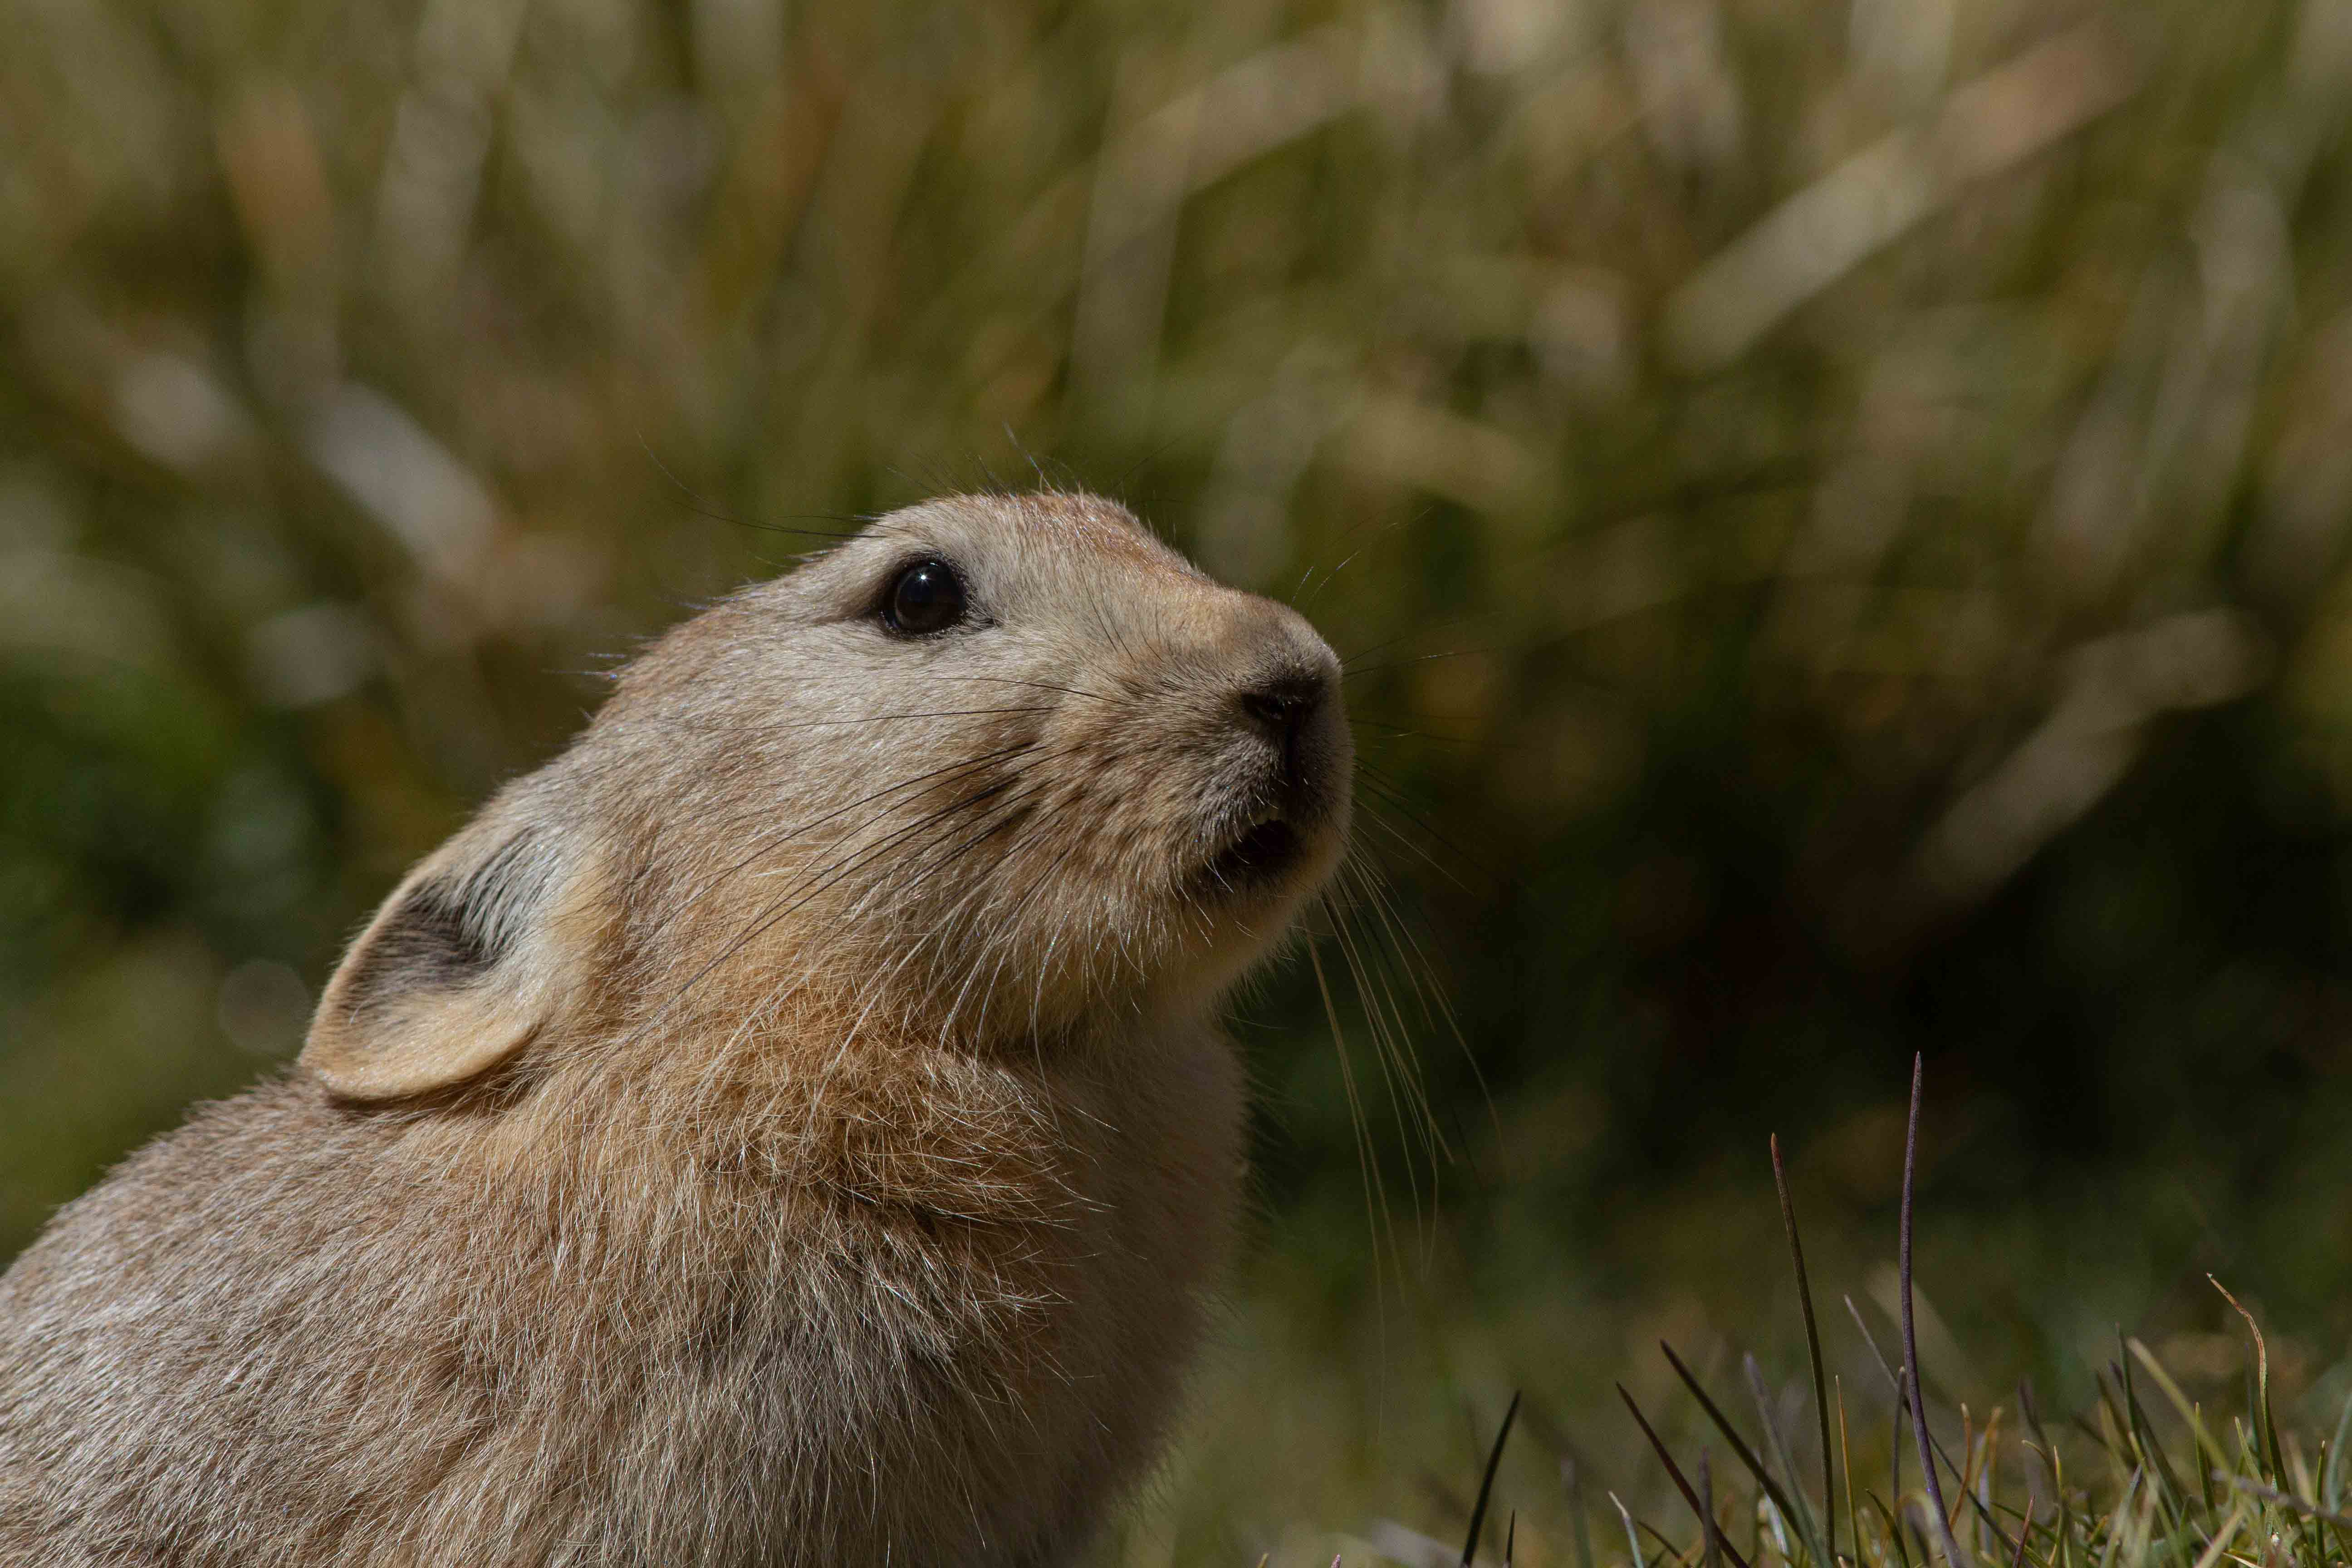 The Ladakh pika has soft rufous-fawn-coloured fur, which is thick during the bitter winter months, and thins out in the summer. Photo: Shivang Mehta